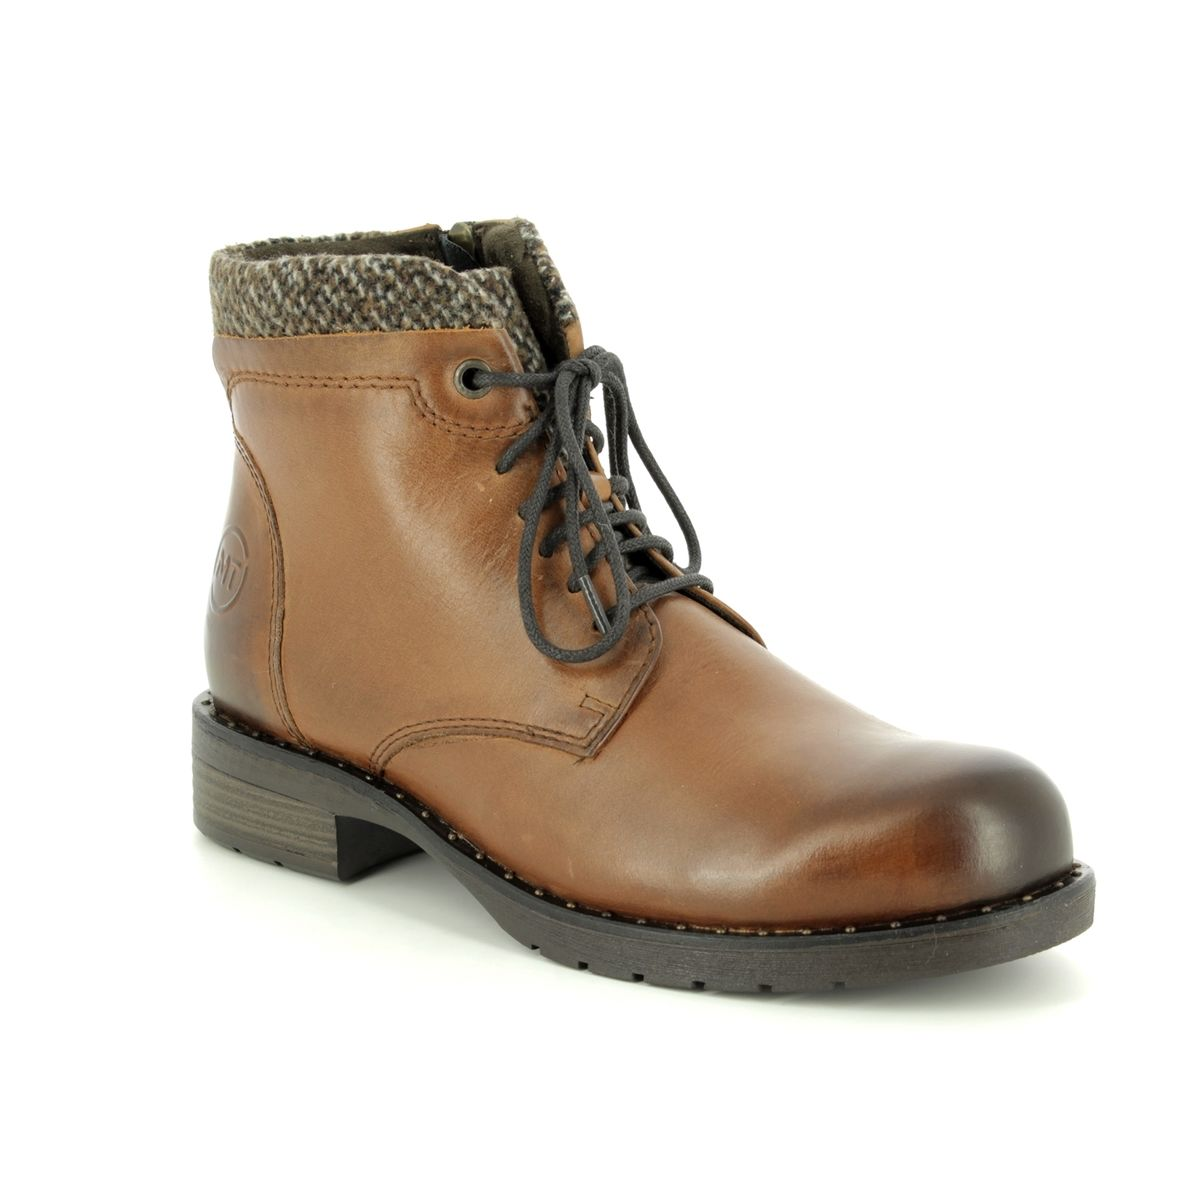 372 ankle Tan 21 Tozzi Marco boots Venezia 25203 Leather 0fqwvxI4n